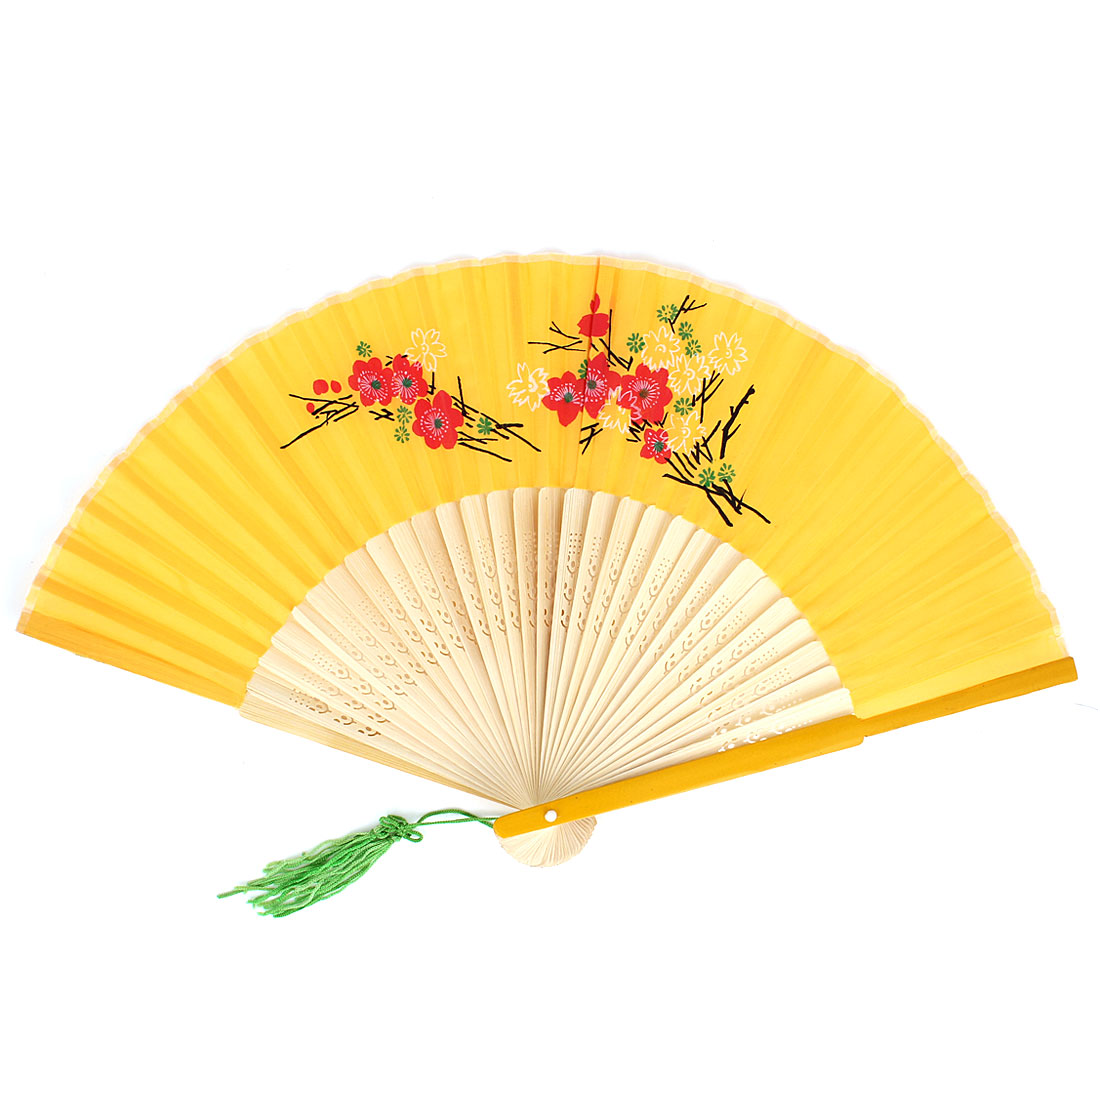 Flowers Pattern Tassels Decor Bamboo Ribs Folding Hand Fan Yellow Beige